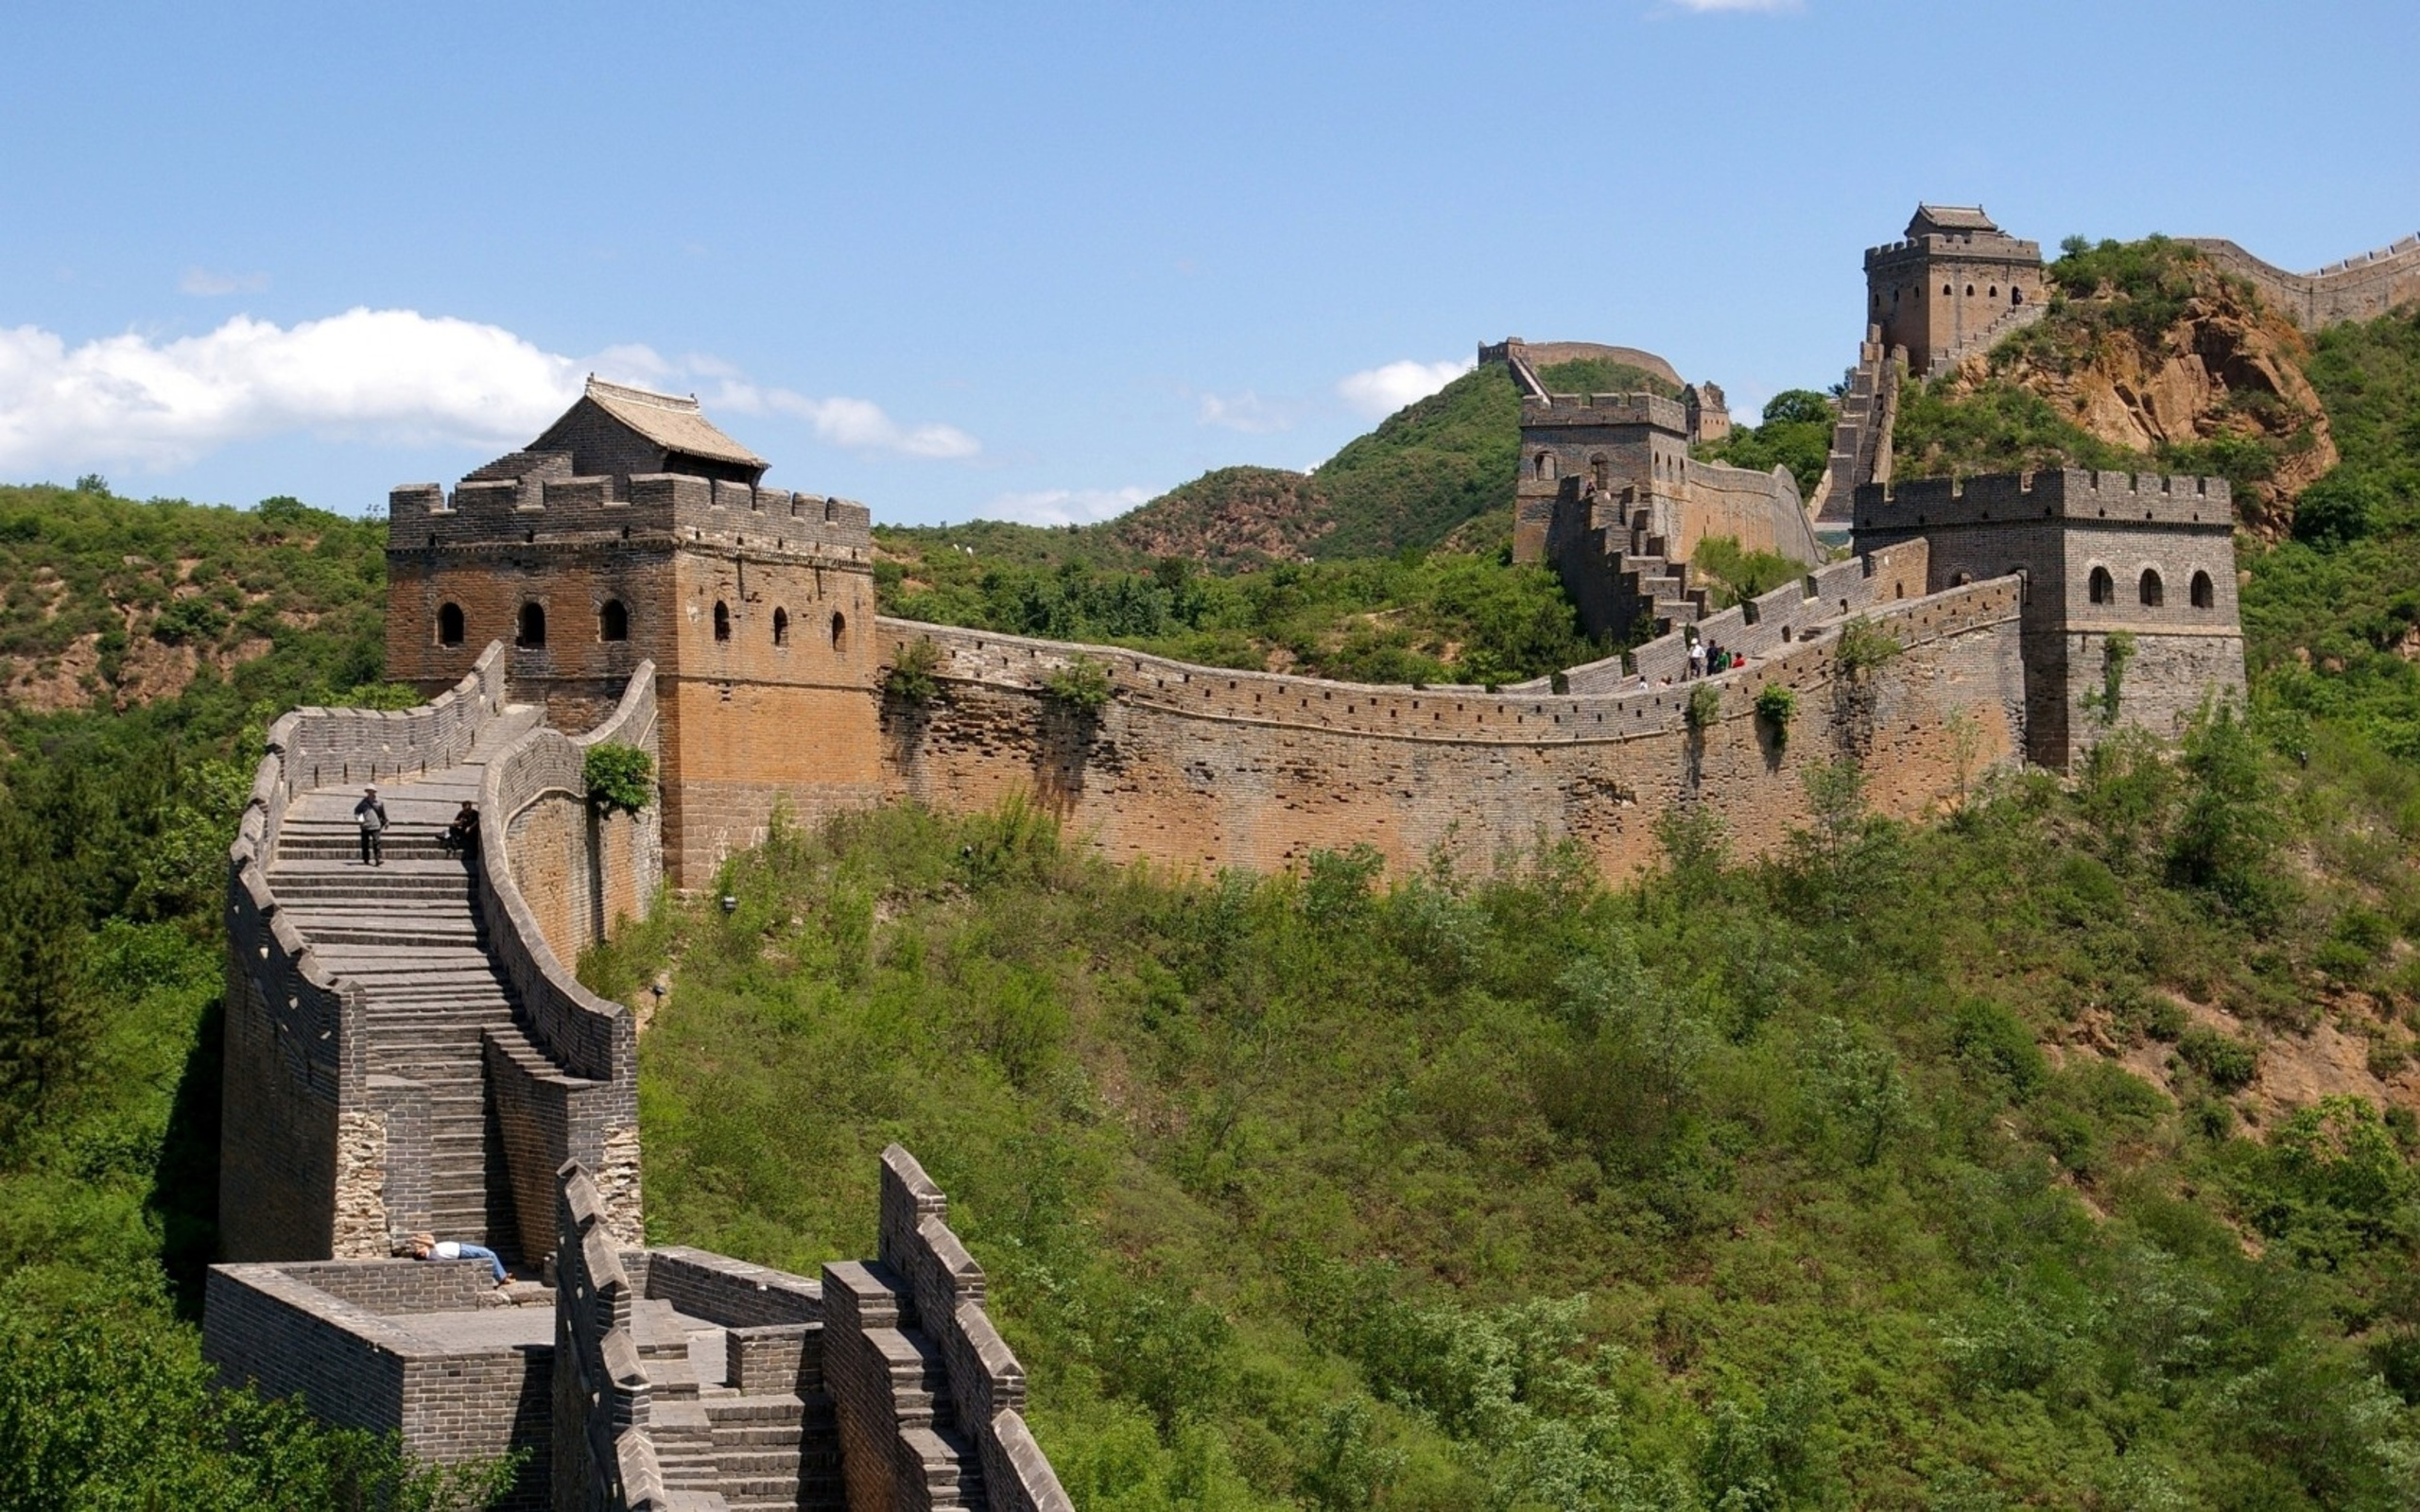 56 Great Wall of China HD Wallpapers Background Images 2560x1600